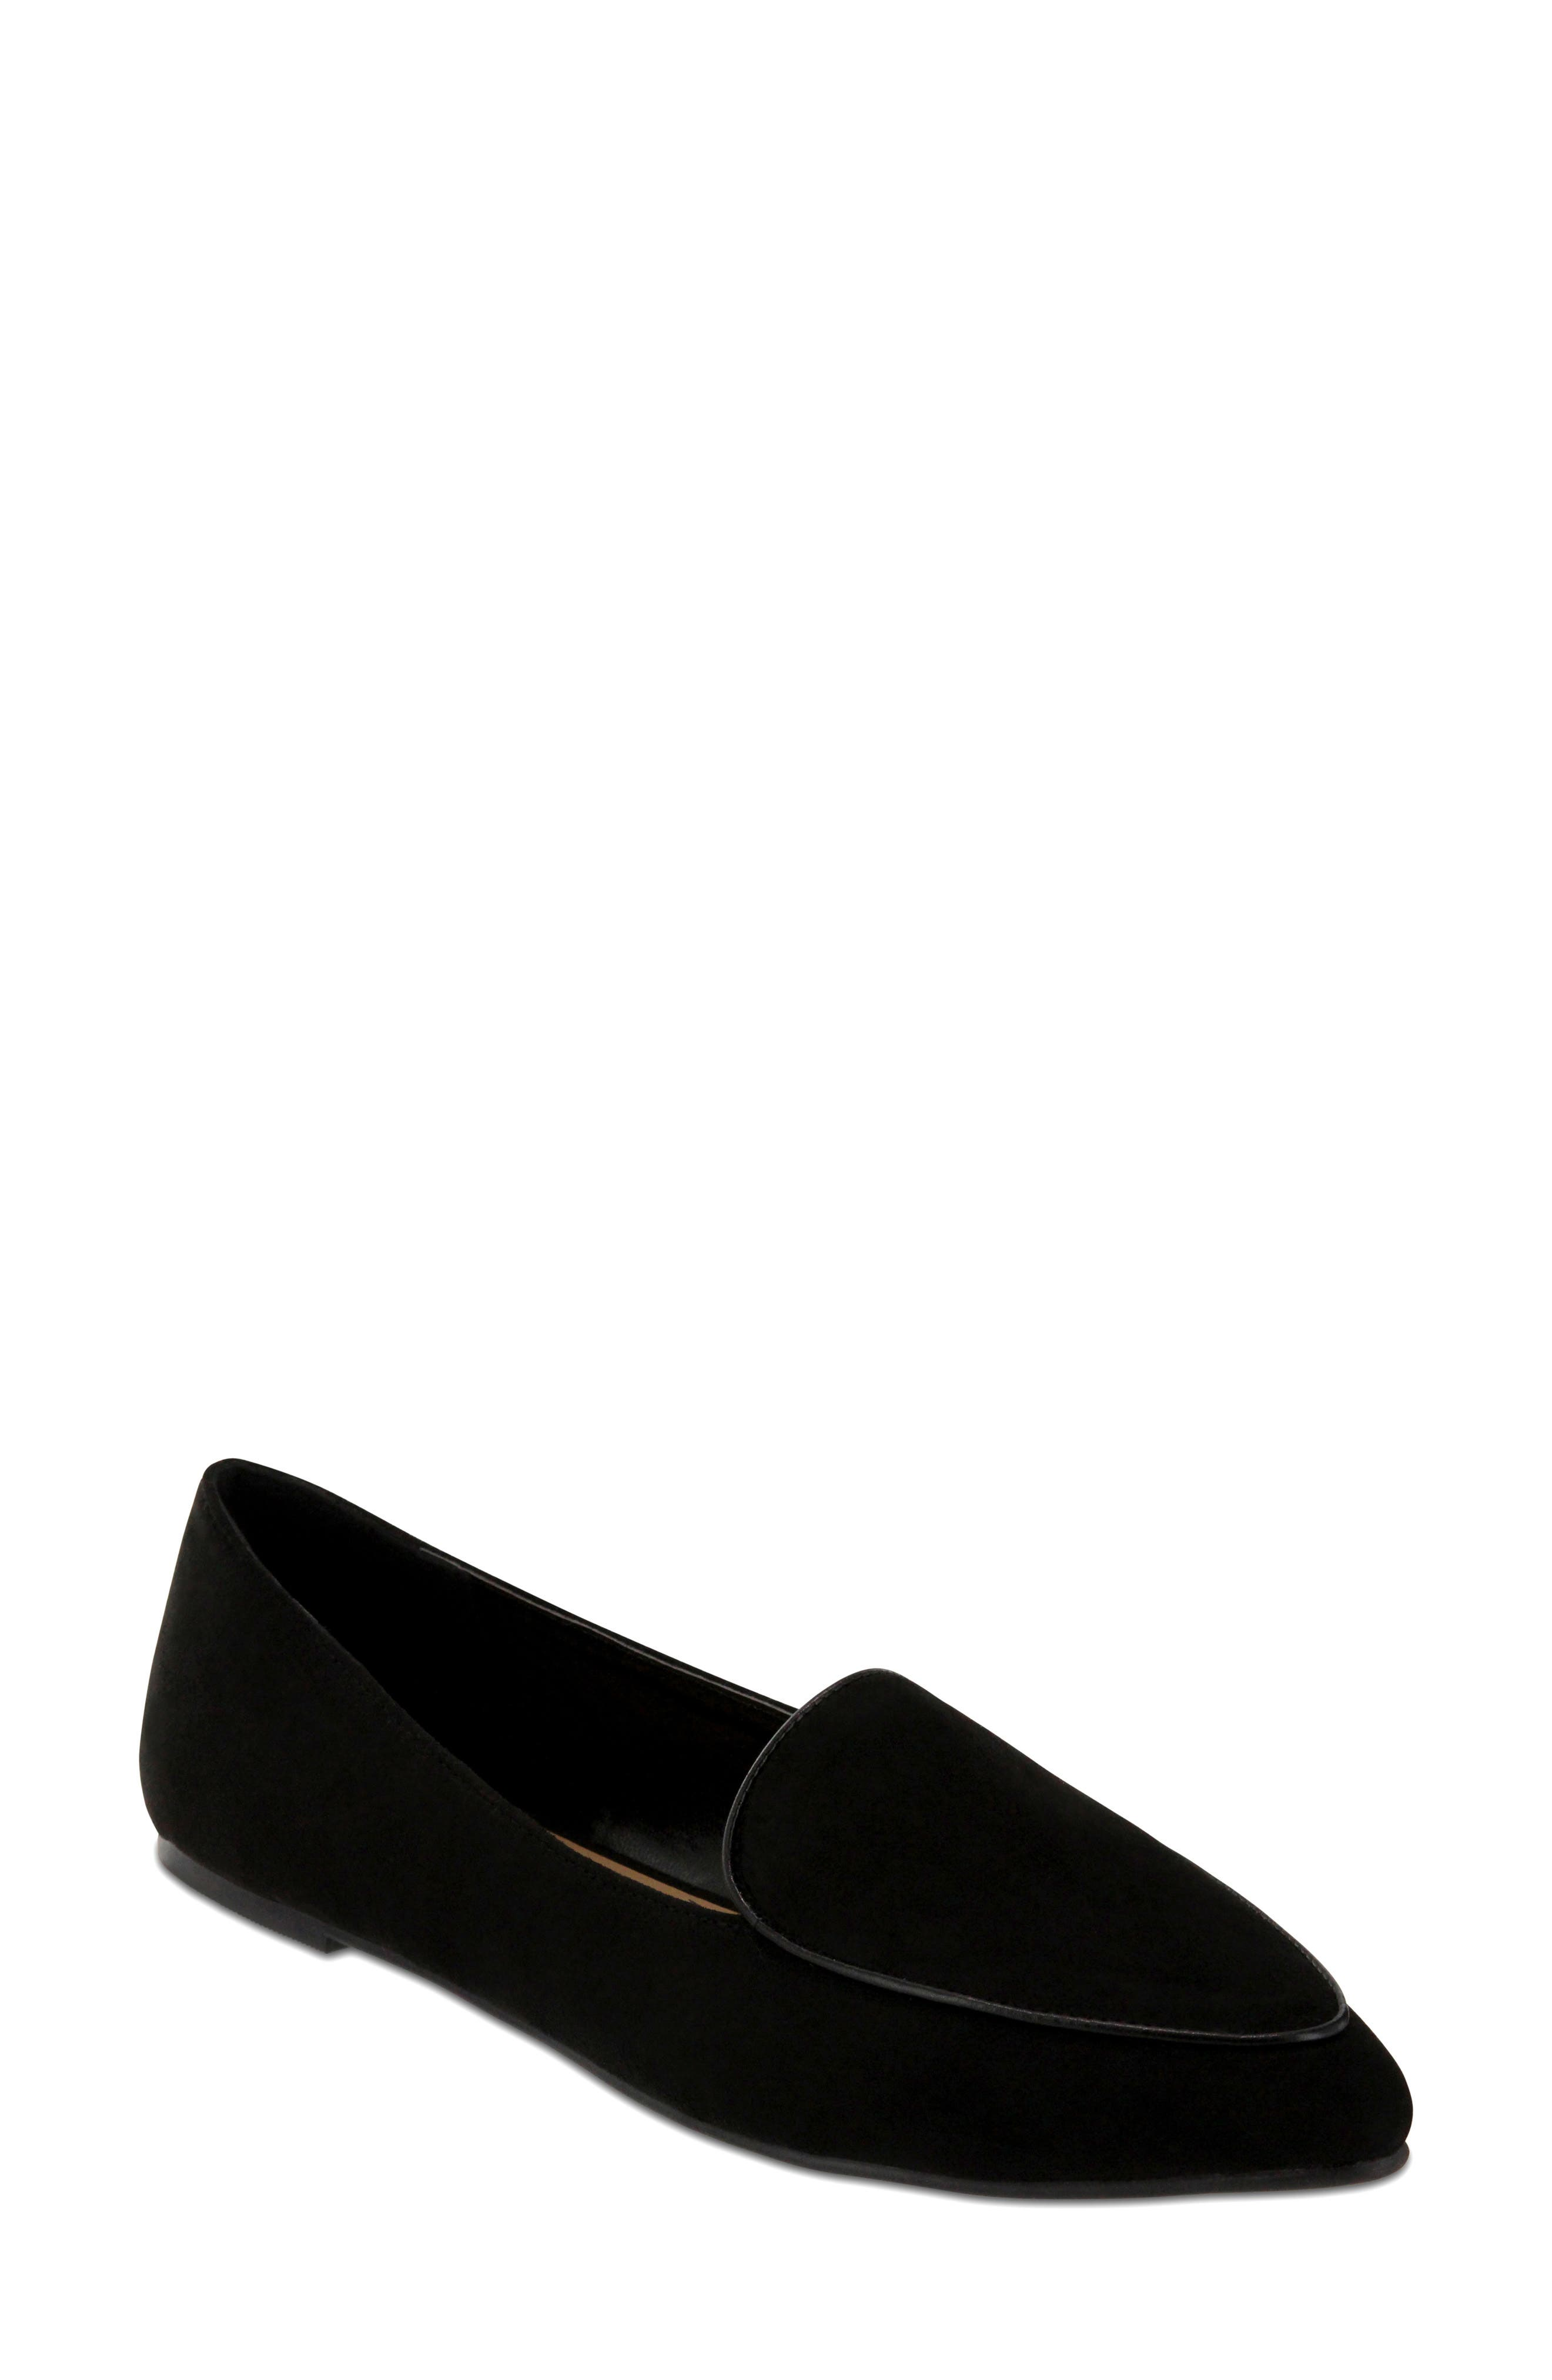 Niles Loafer,                             Main thumbnail 1, color,                             001